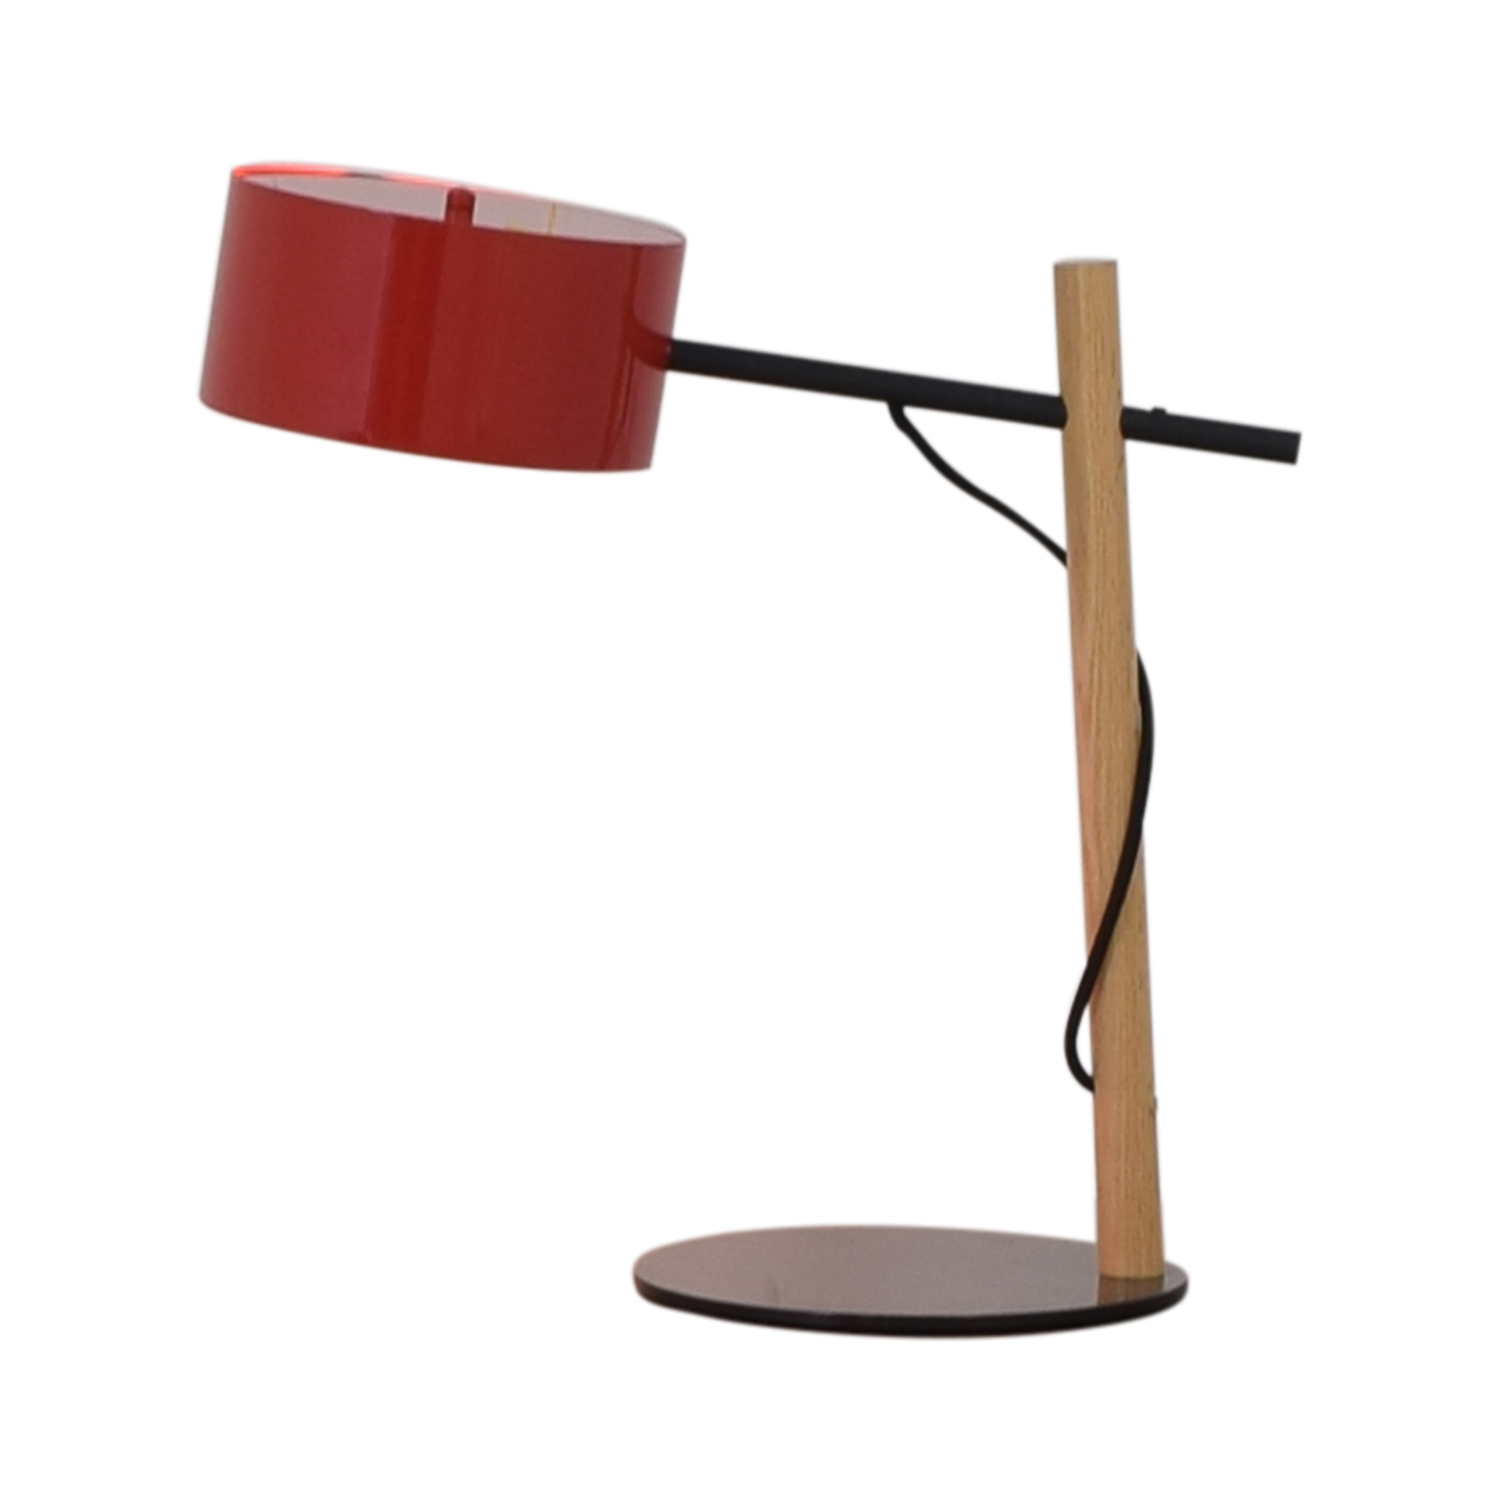 Roll & HIll Roll & Hill Excel Desk Lamp on sale